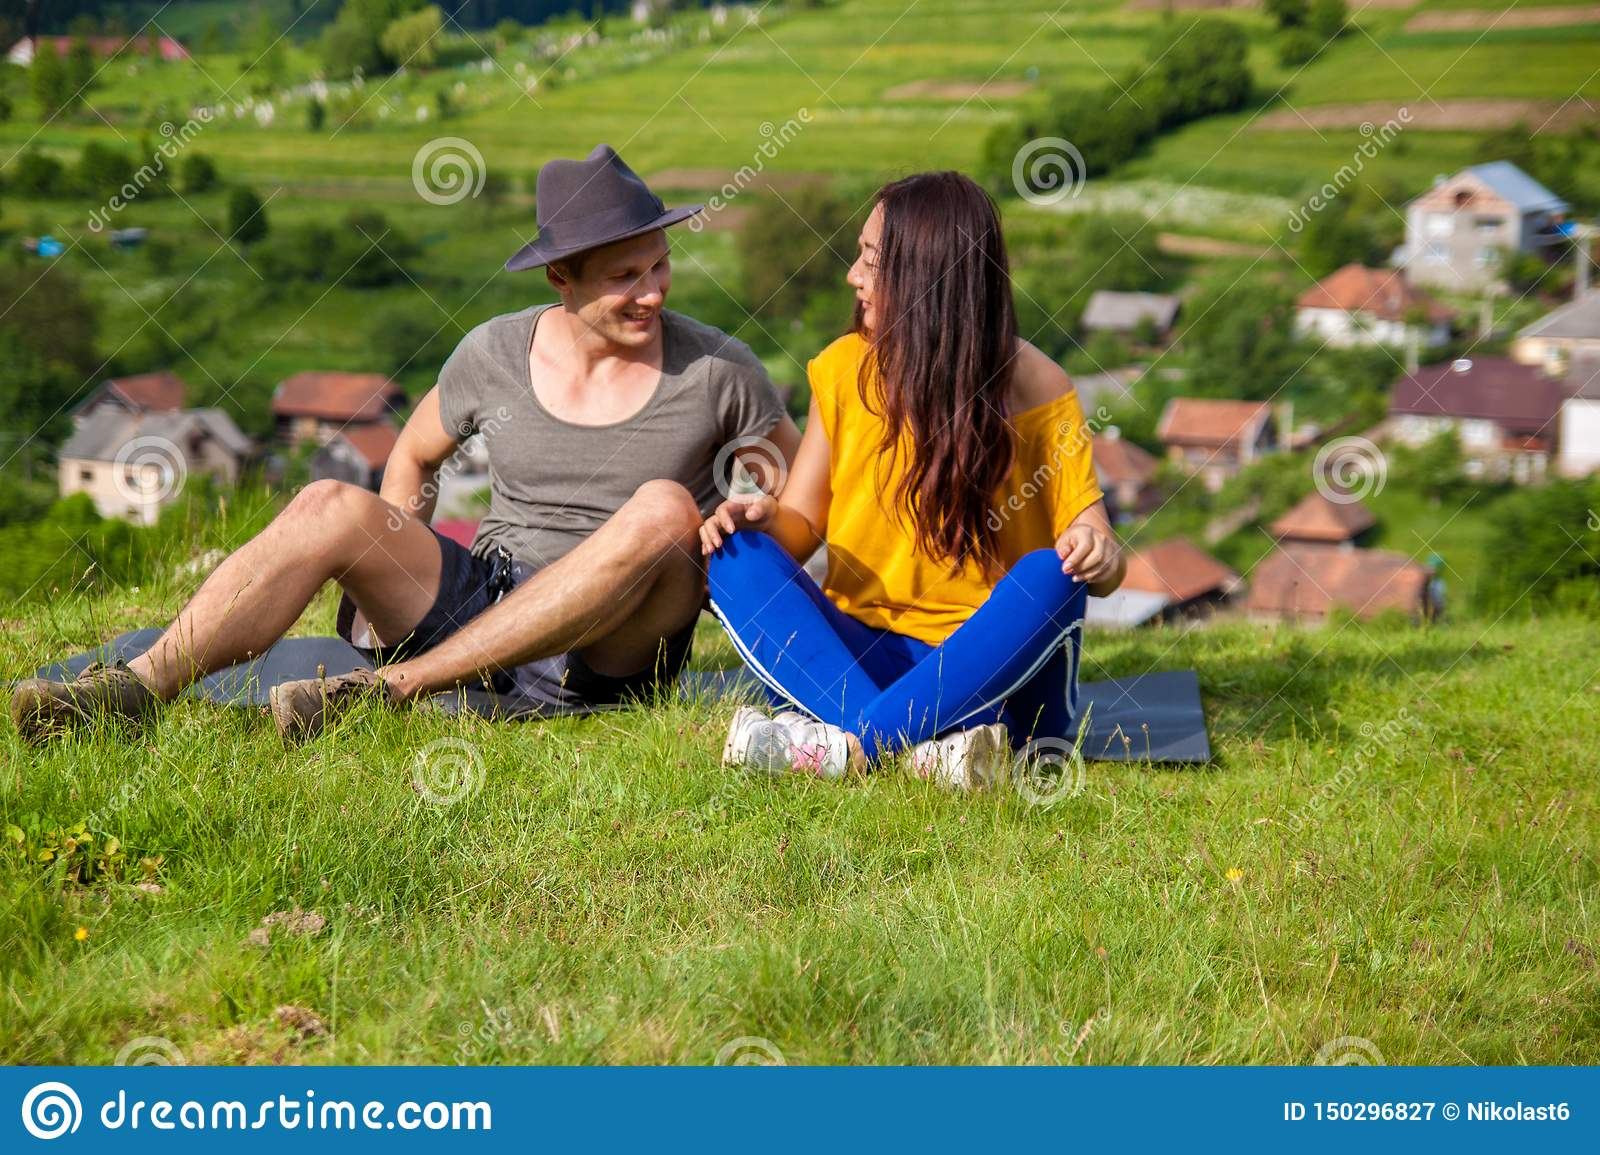 Full length of pretty girl and handsome man joyfully bounding to each other on green grass.